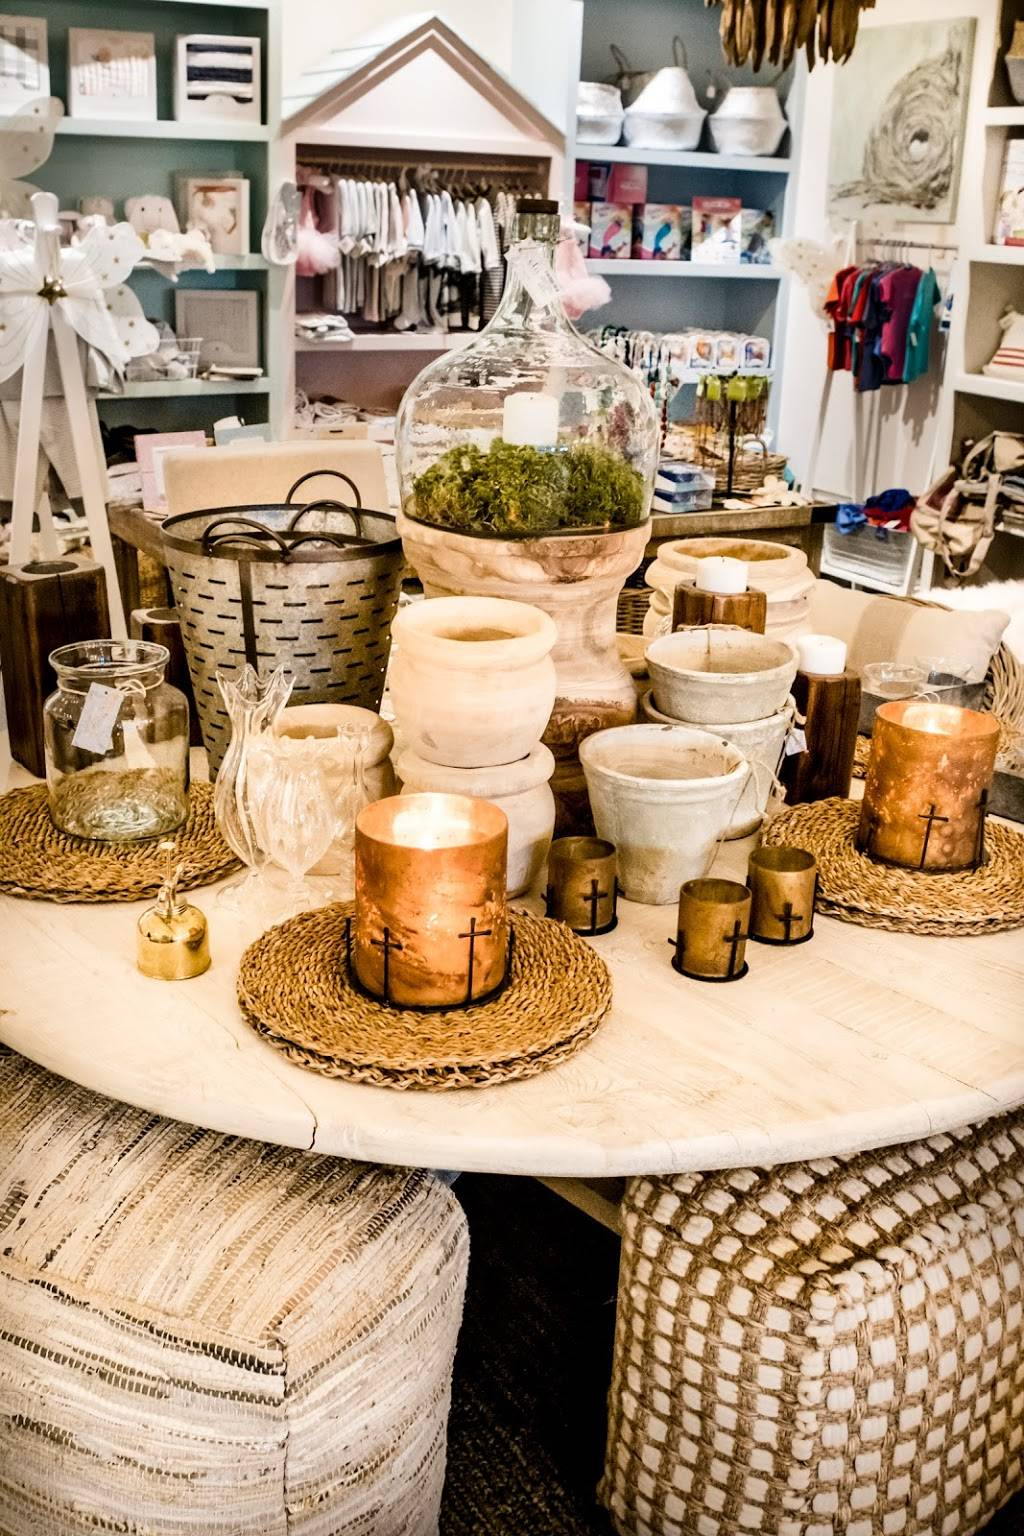 Sanctuary South - home goods store  | Photo 2 of 10 | Address: Westhaven Town Center, 158 Front Street, Suite 104, Franklin, TN 37064, USA | Phone: (615) 435-3779